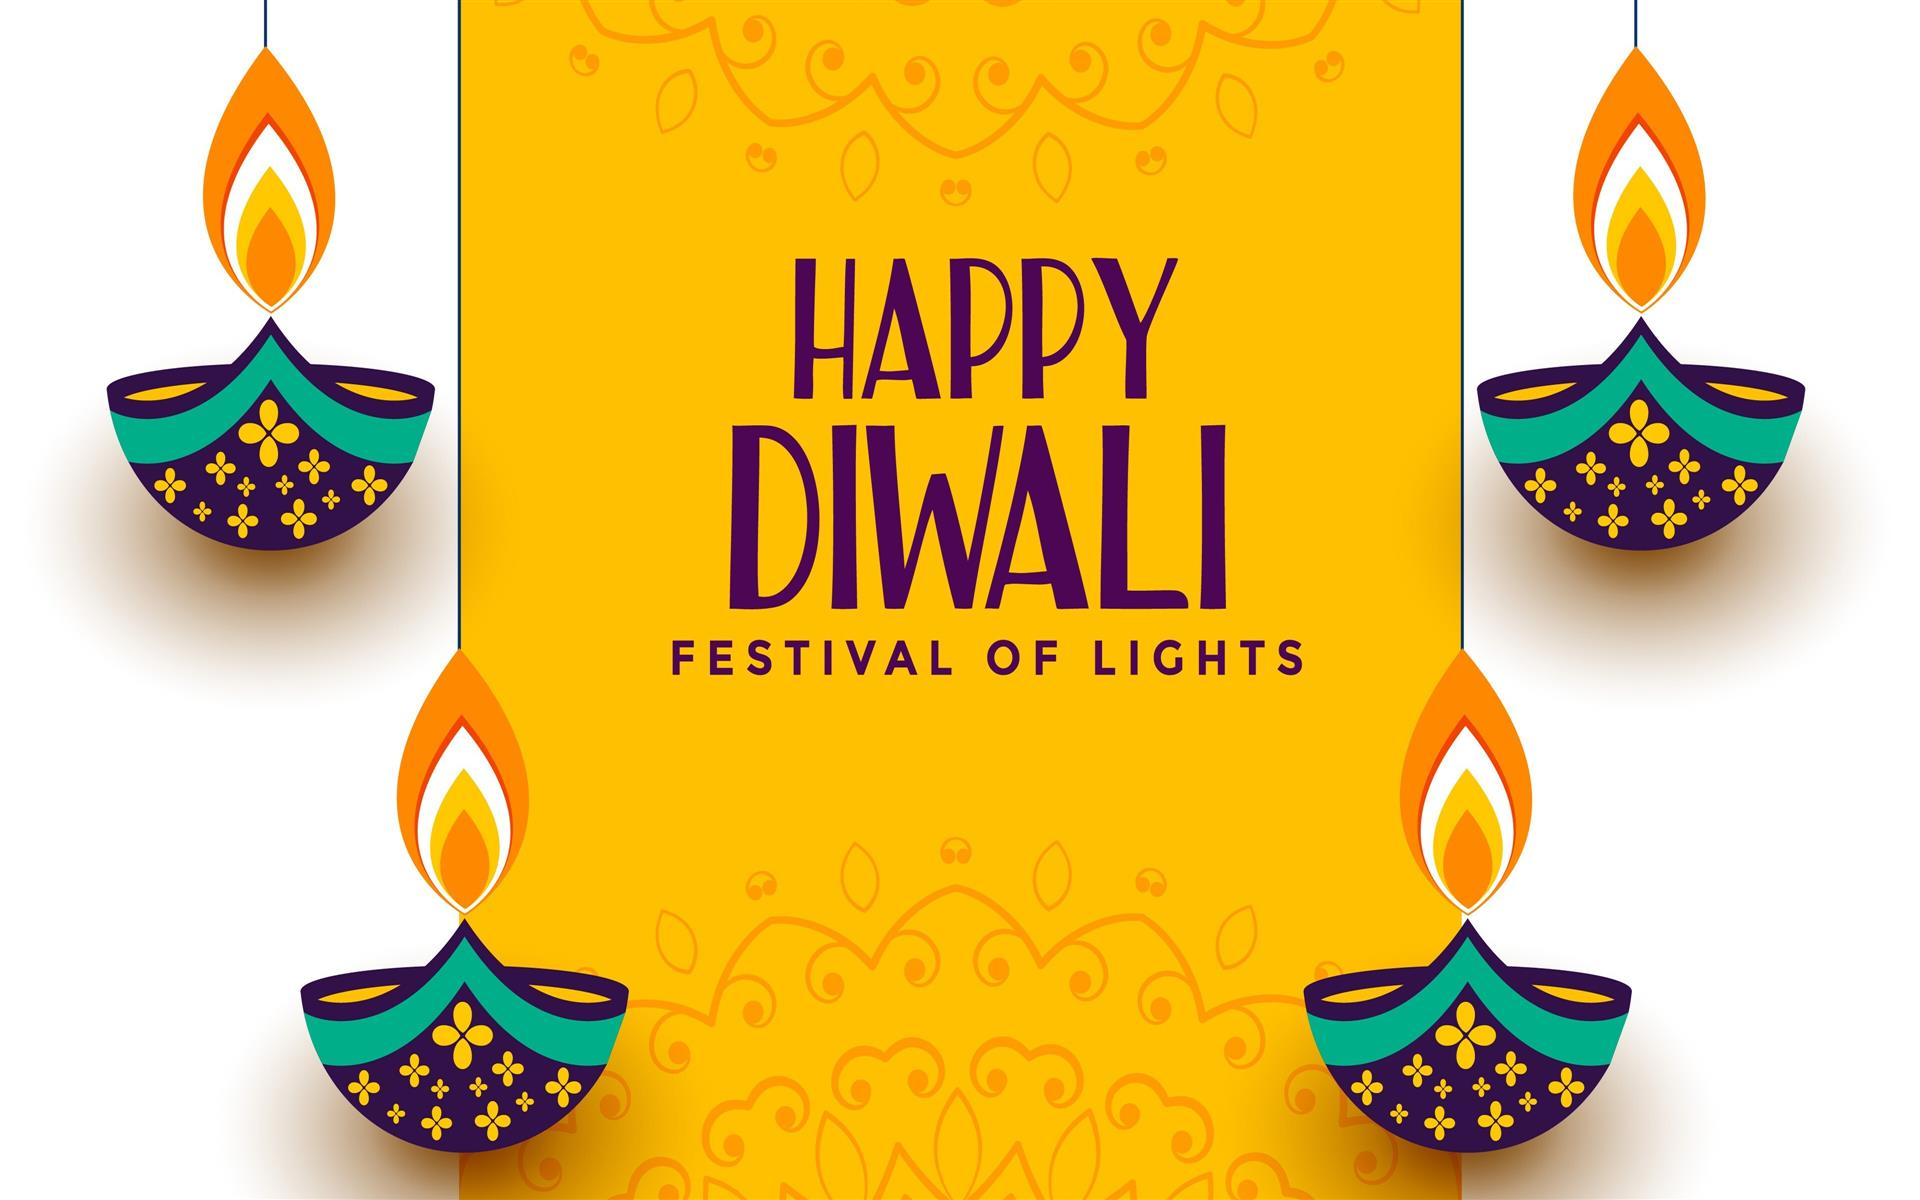 1920x1200 Festival of Lights Diwali 2019 Yellow Background 4K Wallpaper